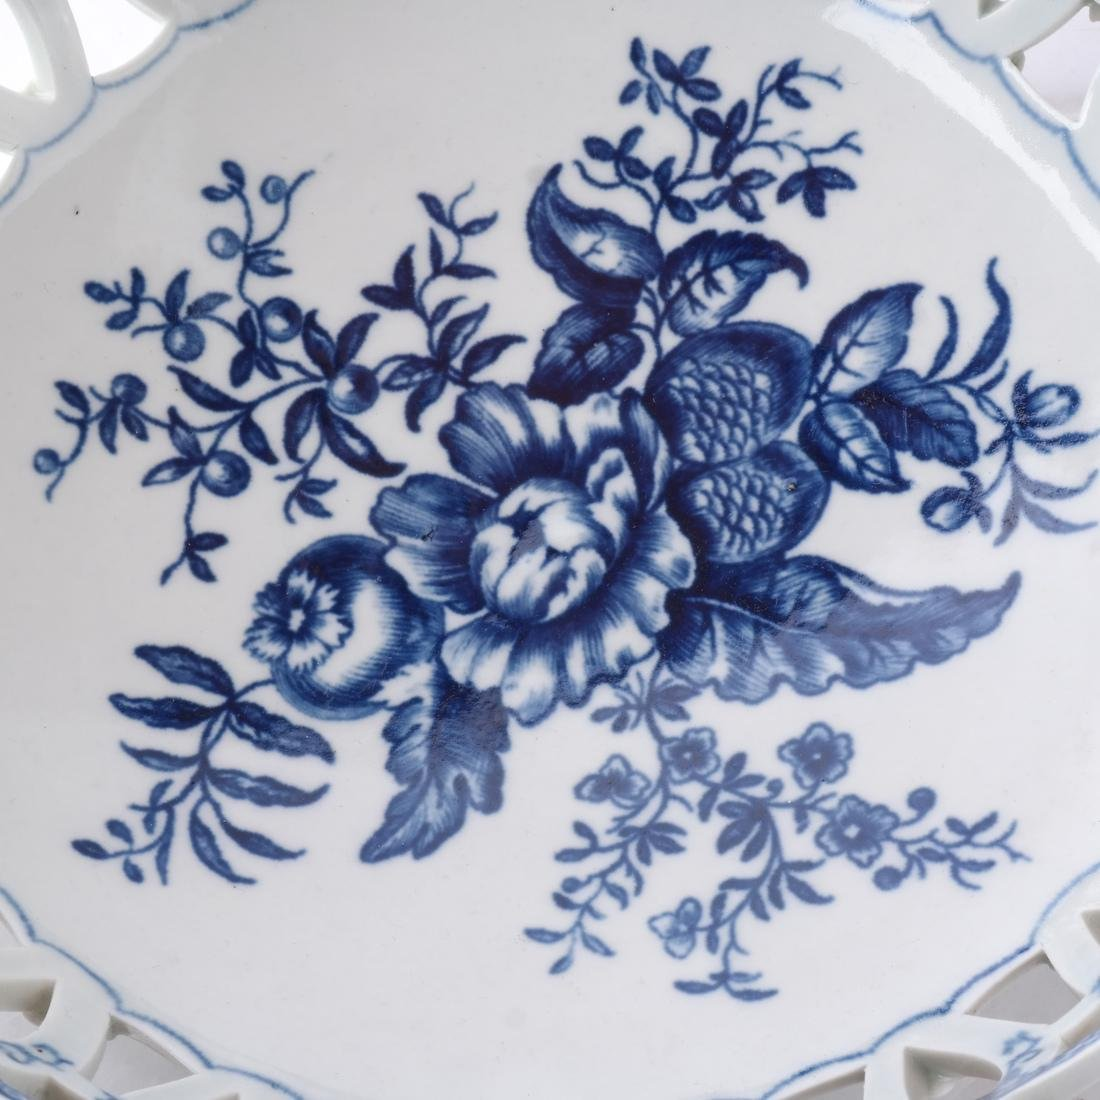 18th C. English Porcelain Basket - 3